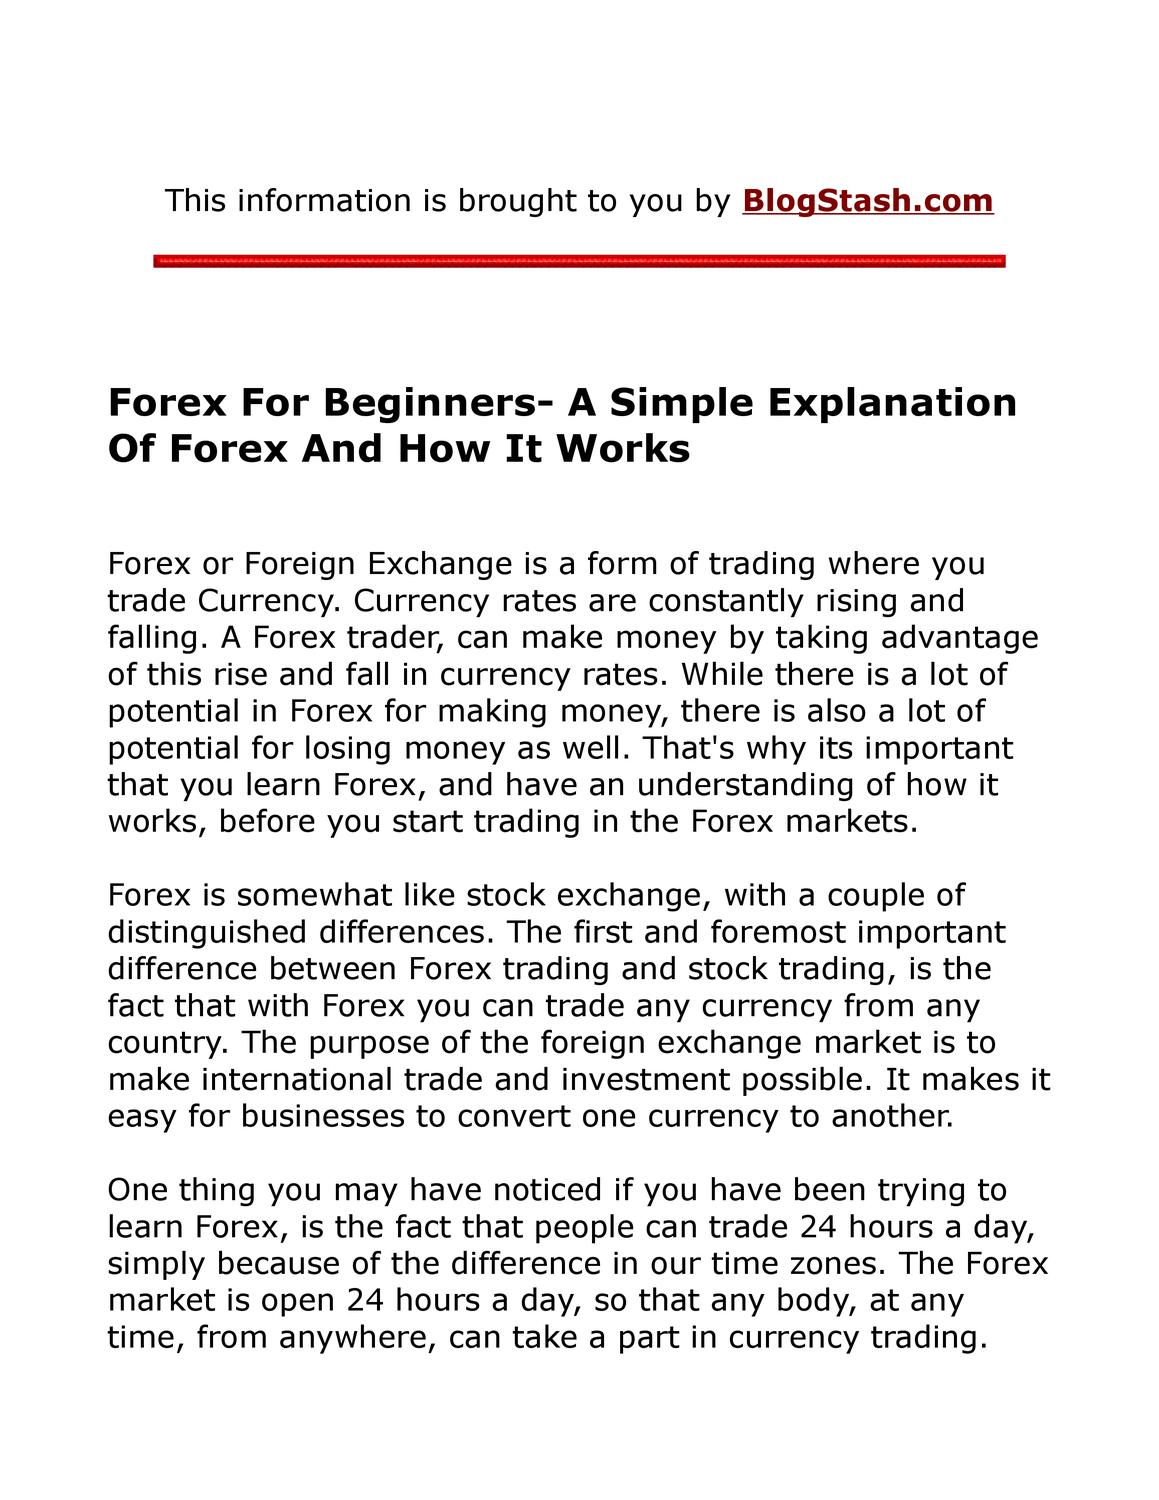 How forex works online